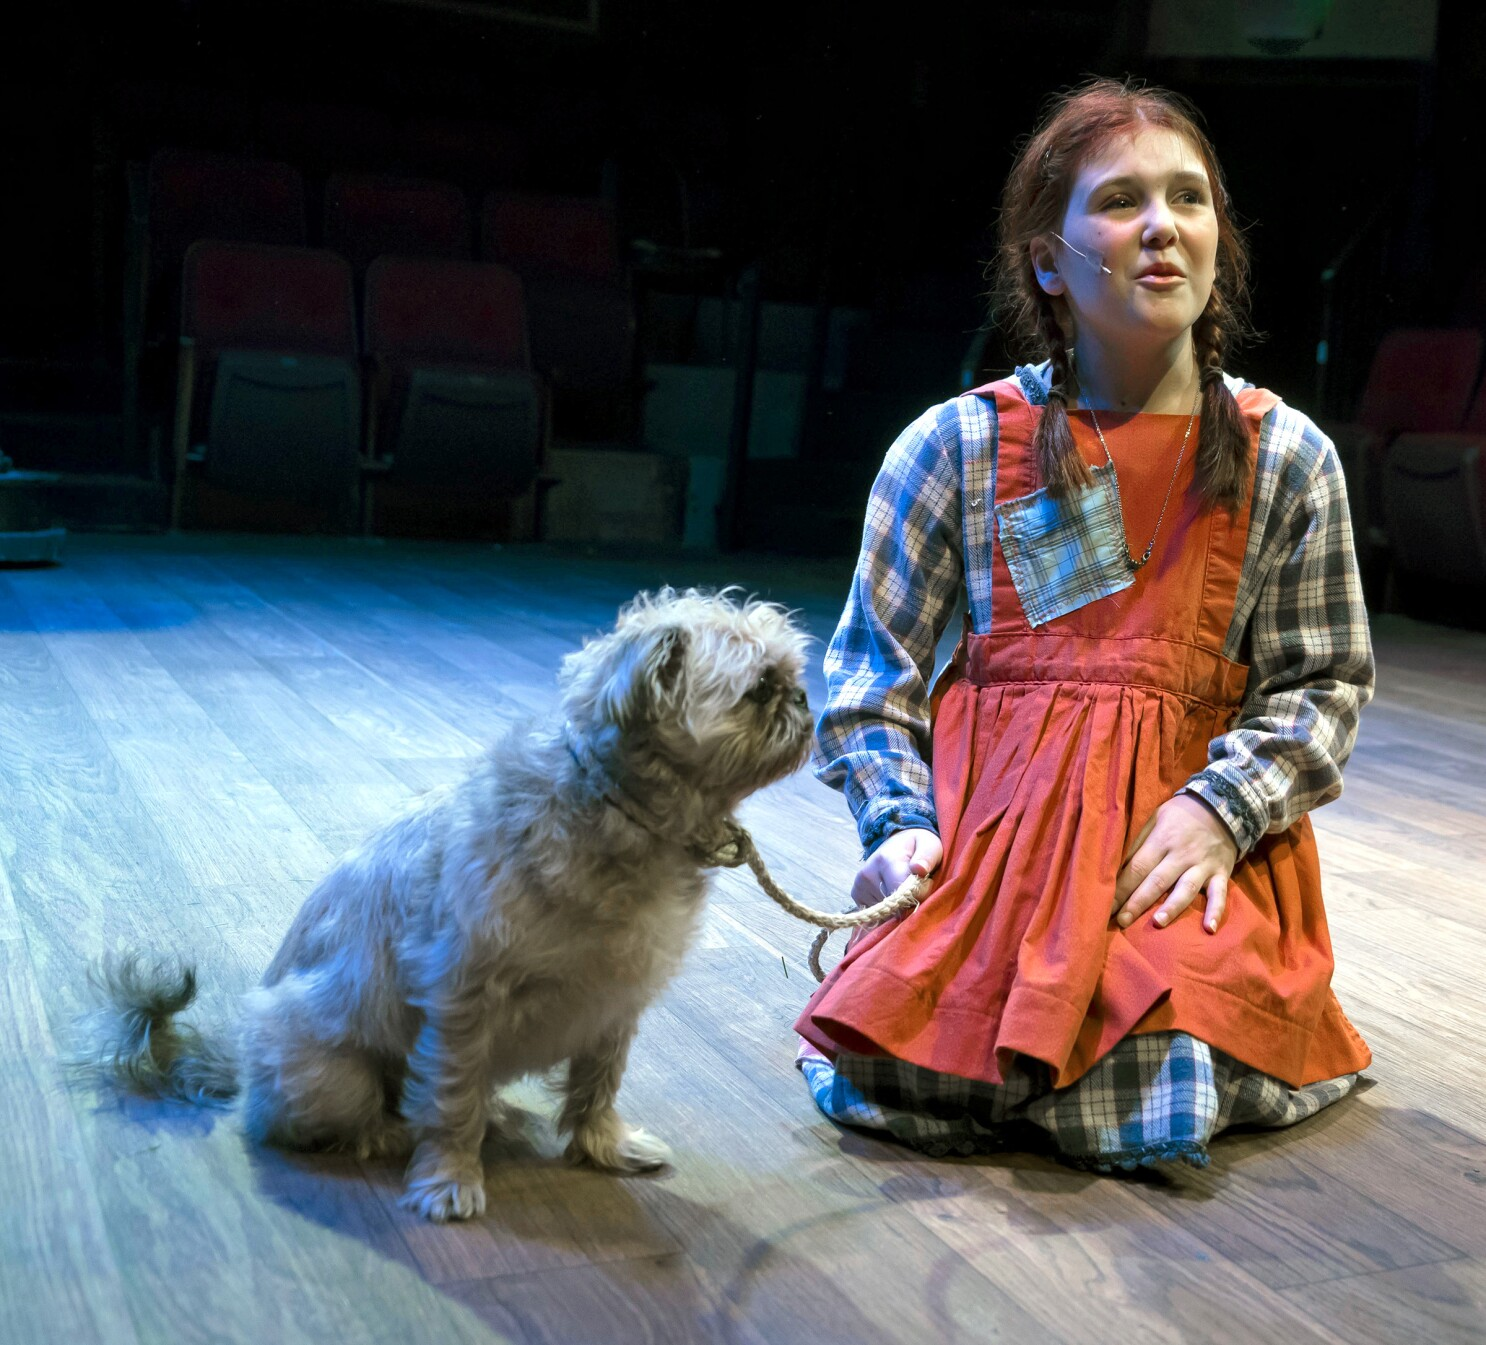 Musical 'Annie' takes center stage at local theater